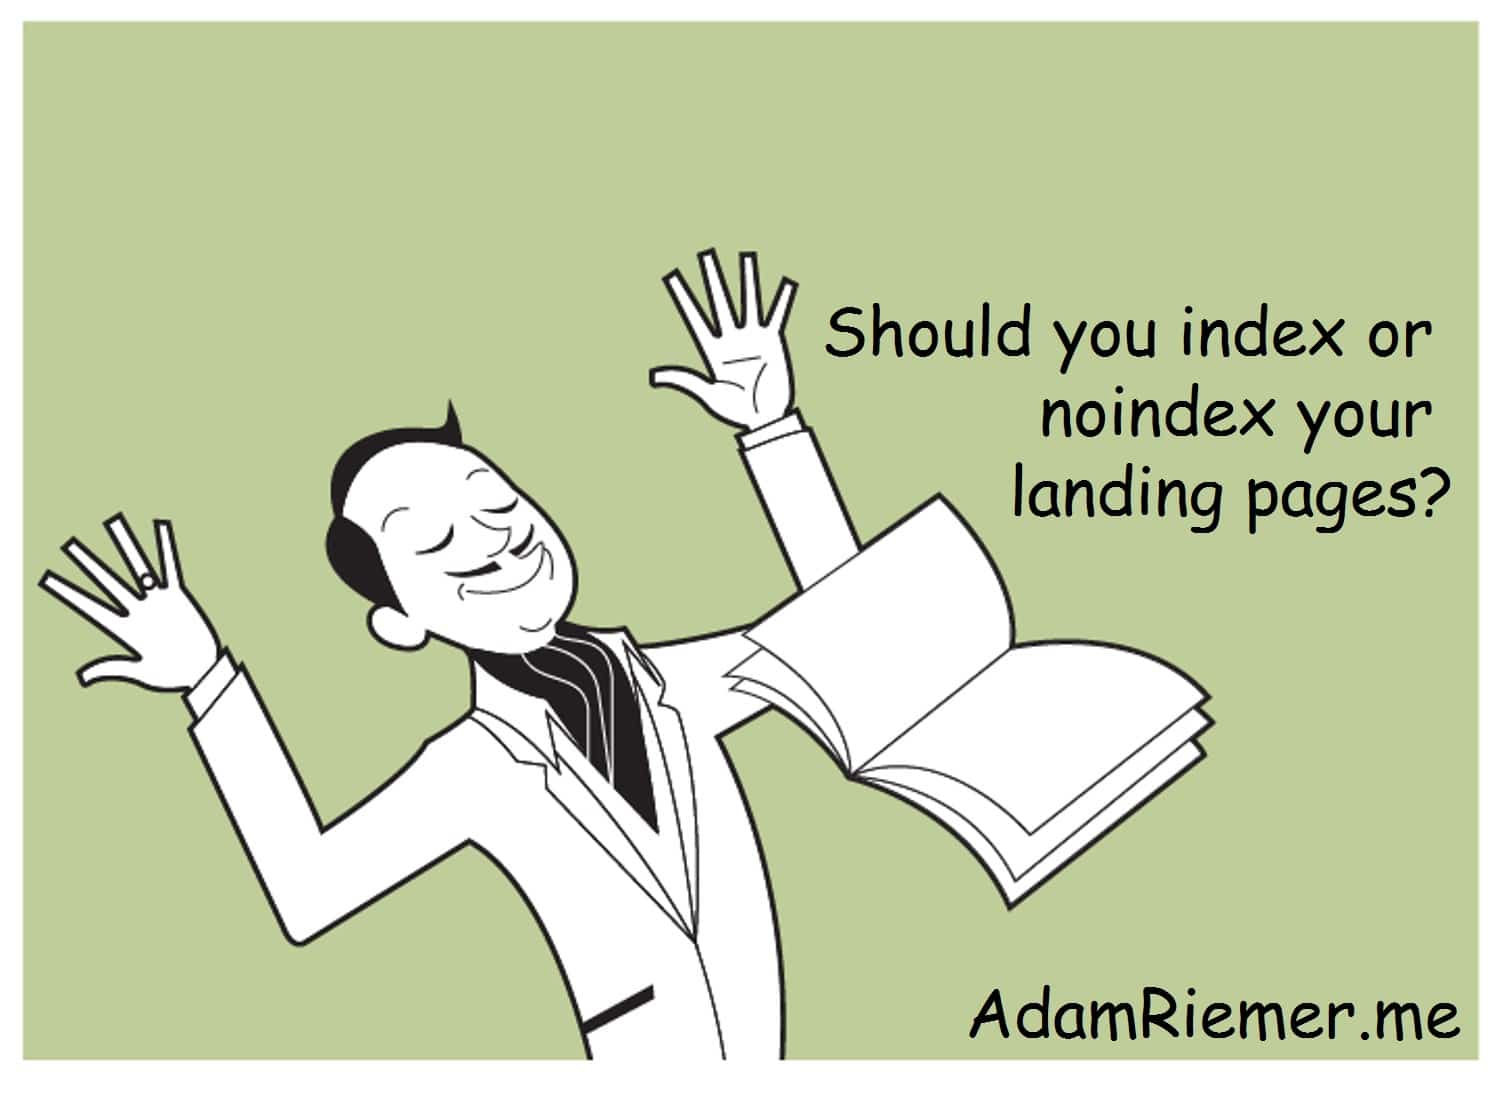 should you index or noindex landing pages